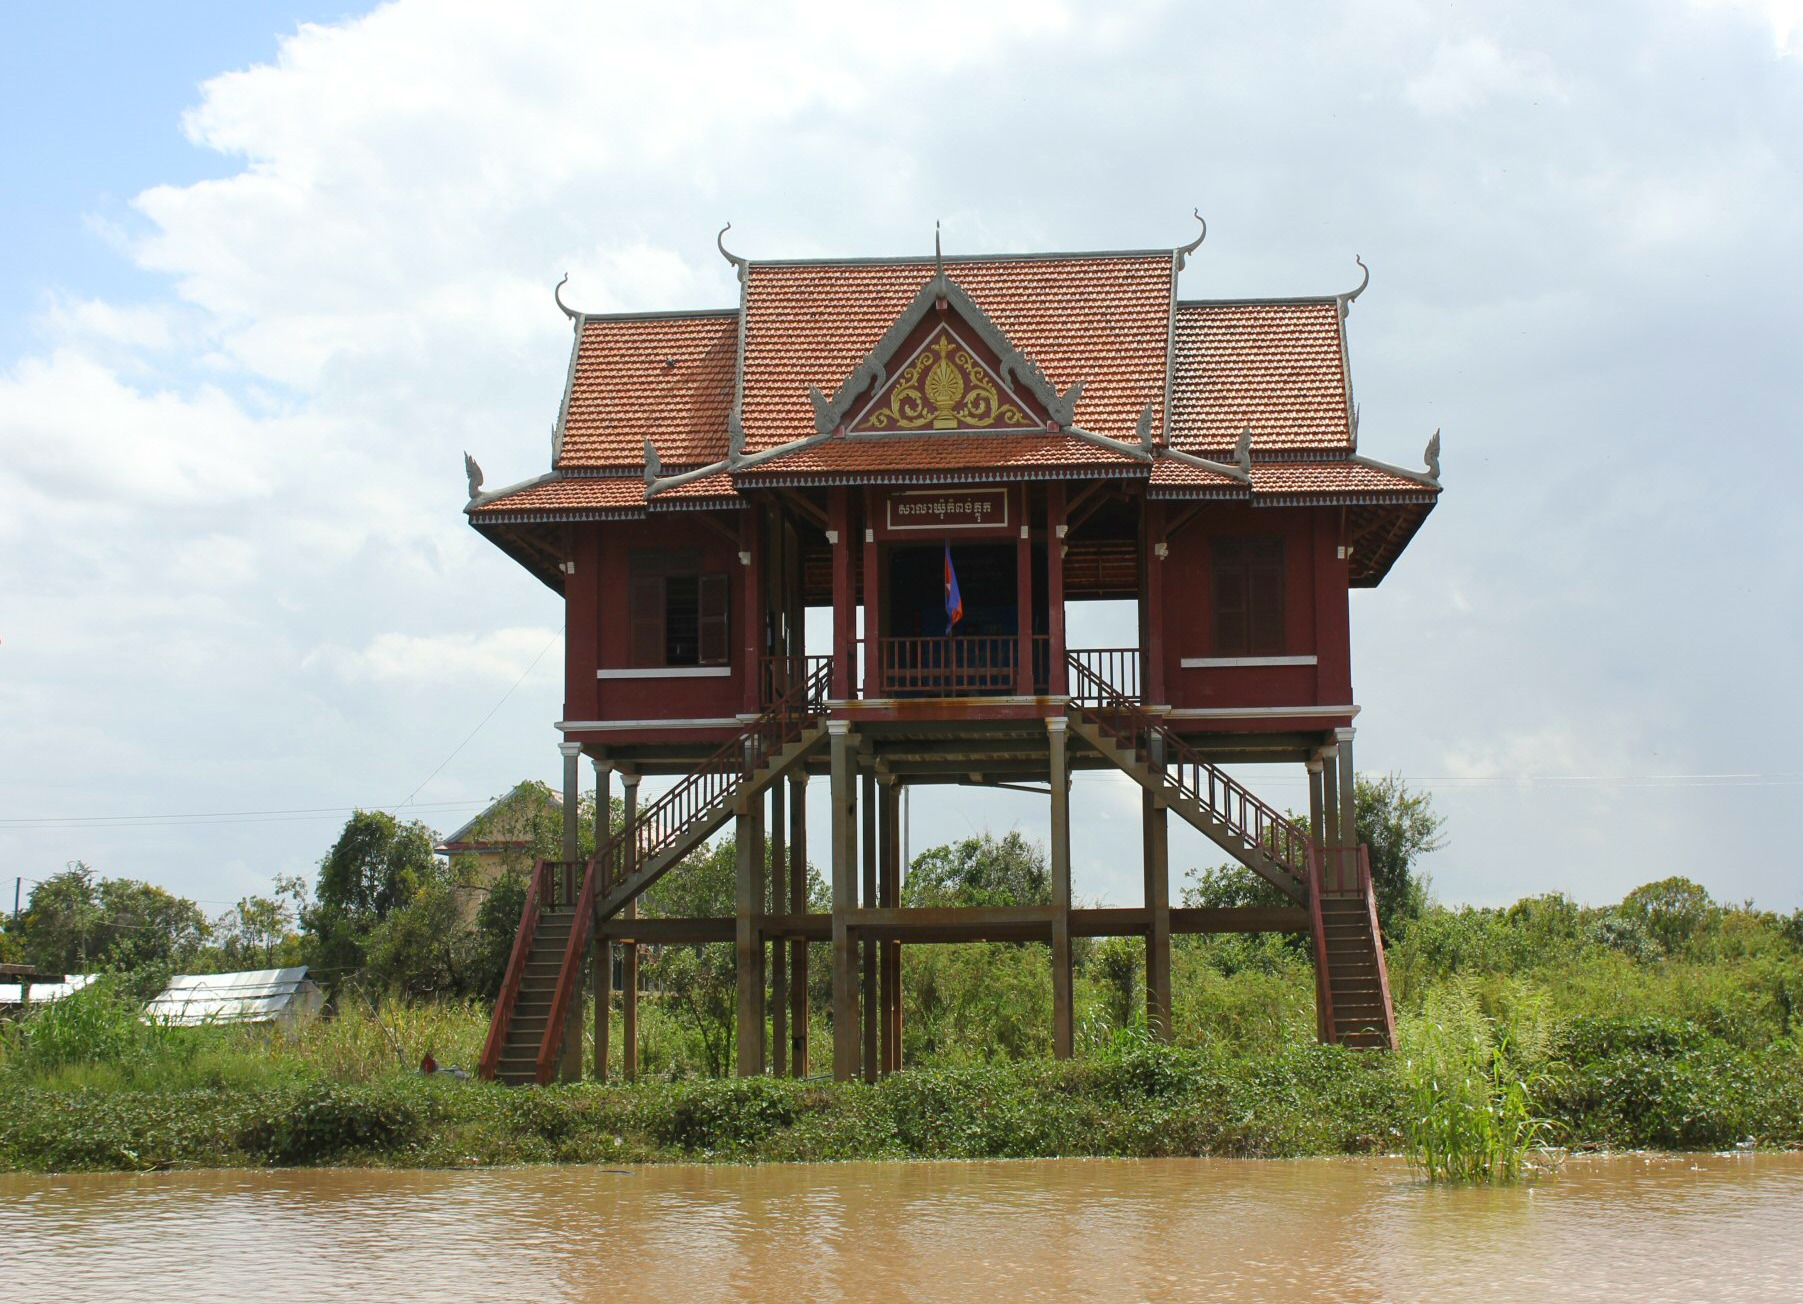 A stilt house by the river near Tonle Sap lake - 12 reasons to visit Cambodia with kids